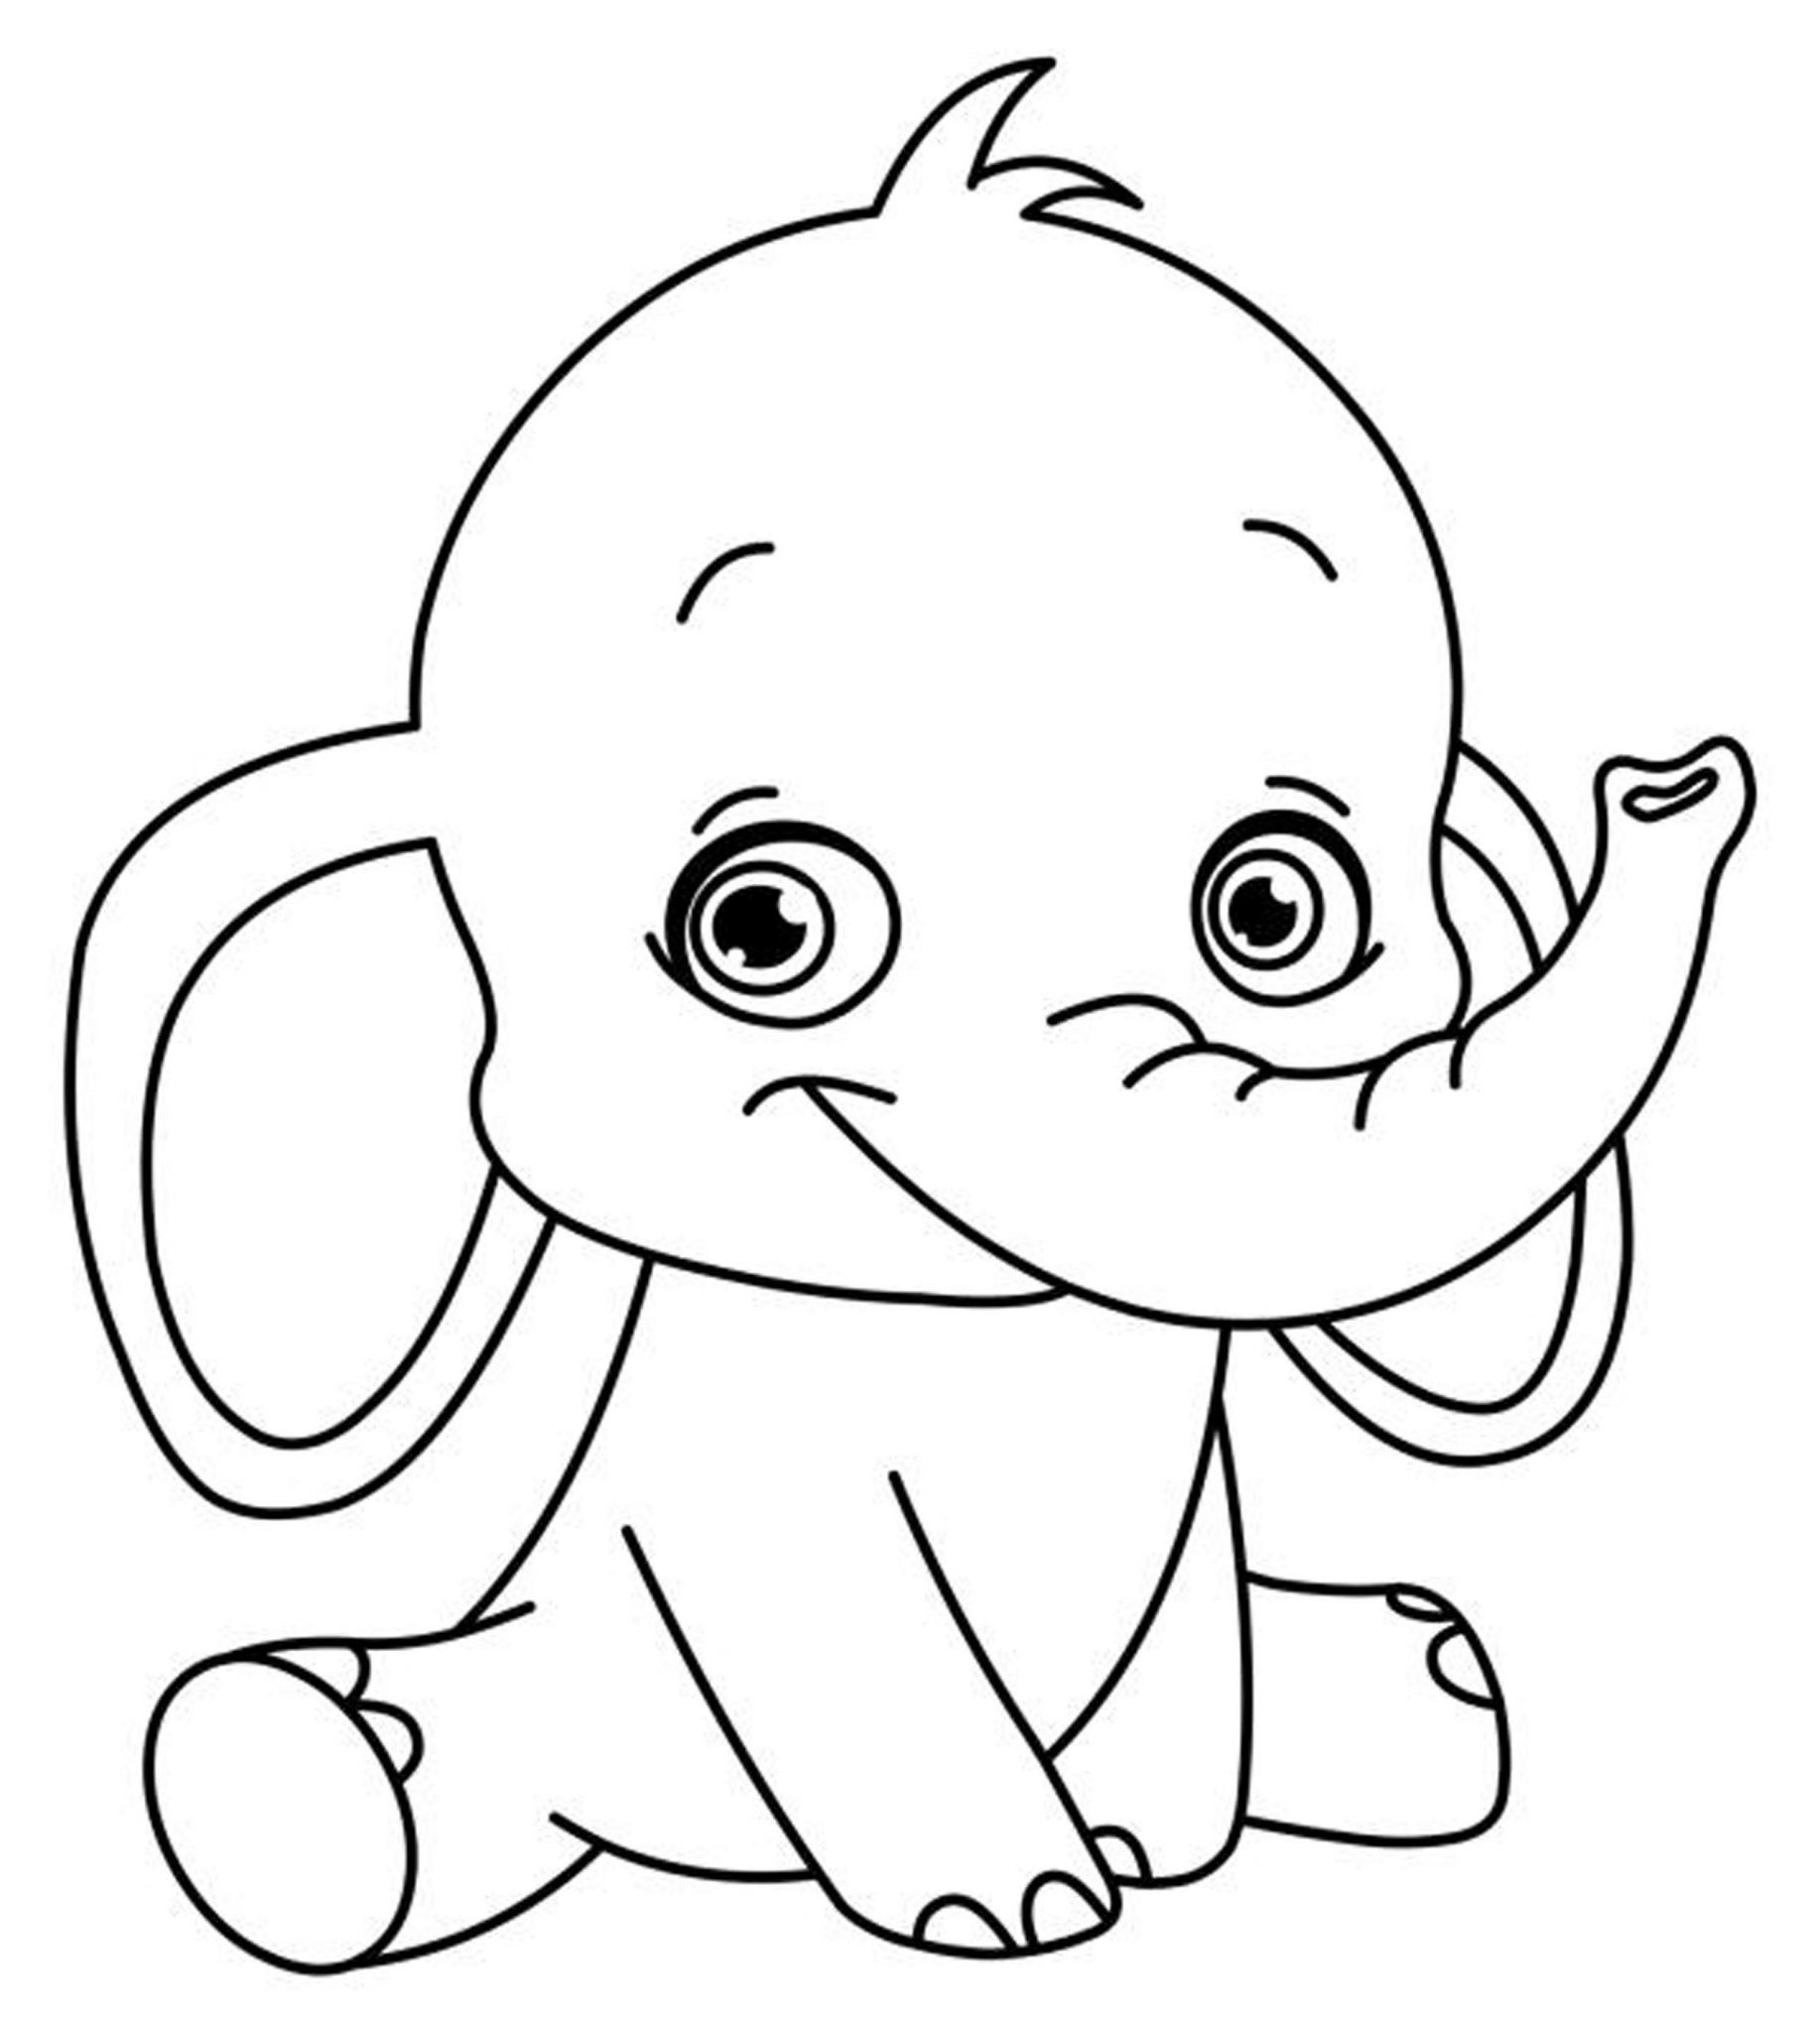 walt-disney-coloring-pages | | BestAppsForKids.com